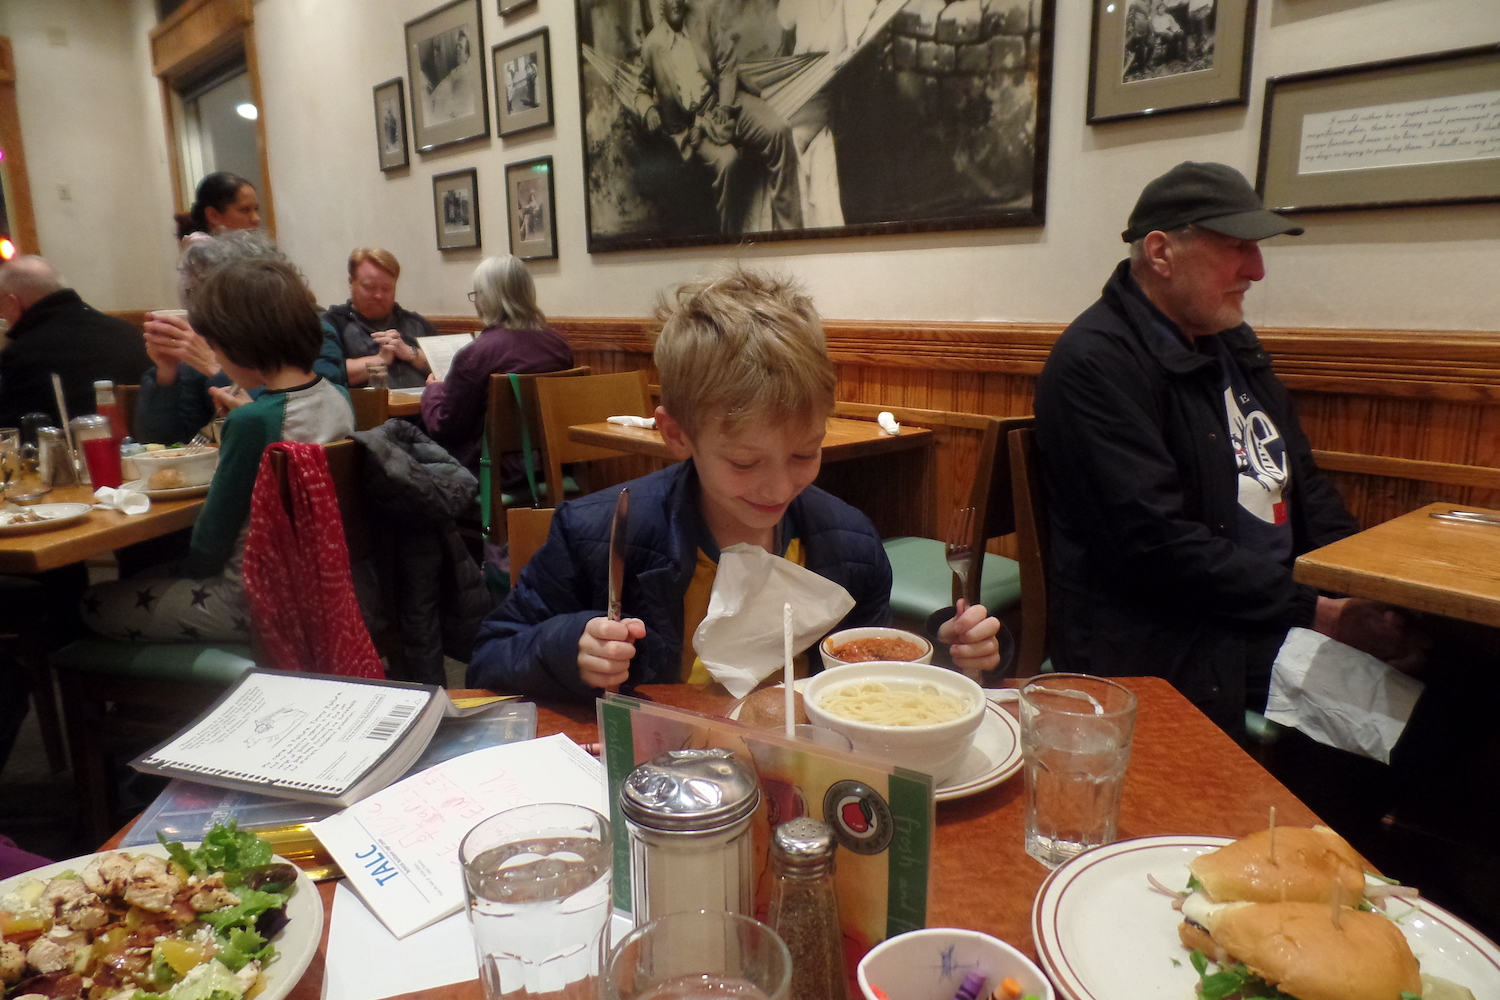 An 8-year-old boy sits with a napkin as a bib holding a fork and knife in his hands in front of a plate bowl of plain spaghetti noodles and a side of sauce at Fatapple's in Berkeley.